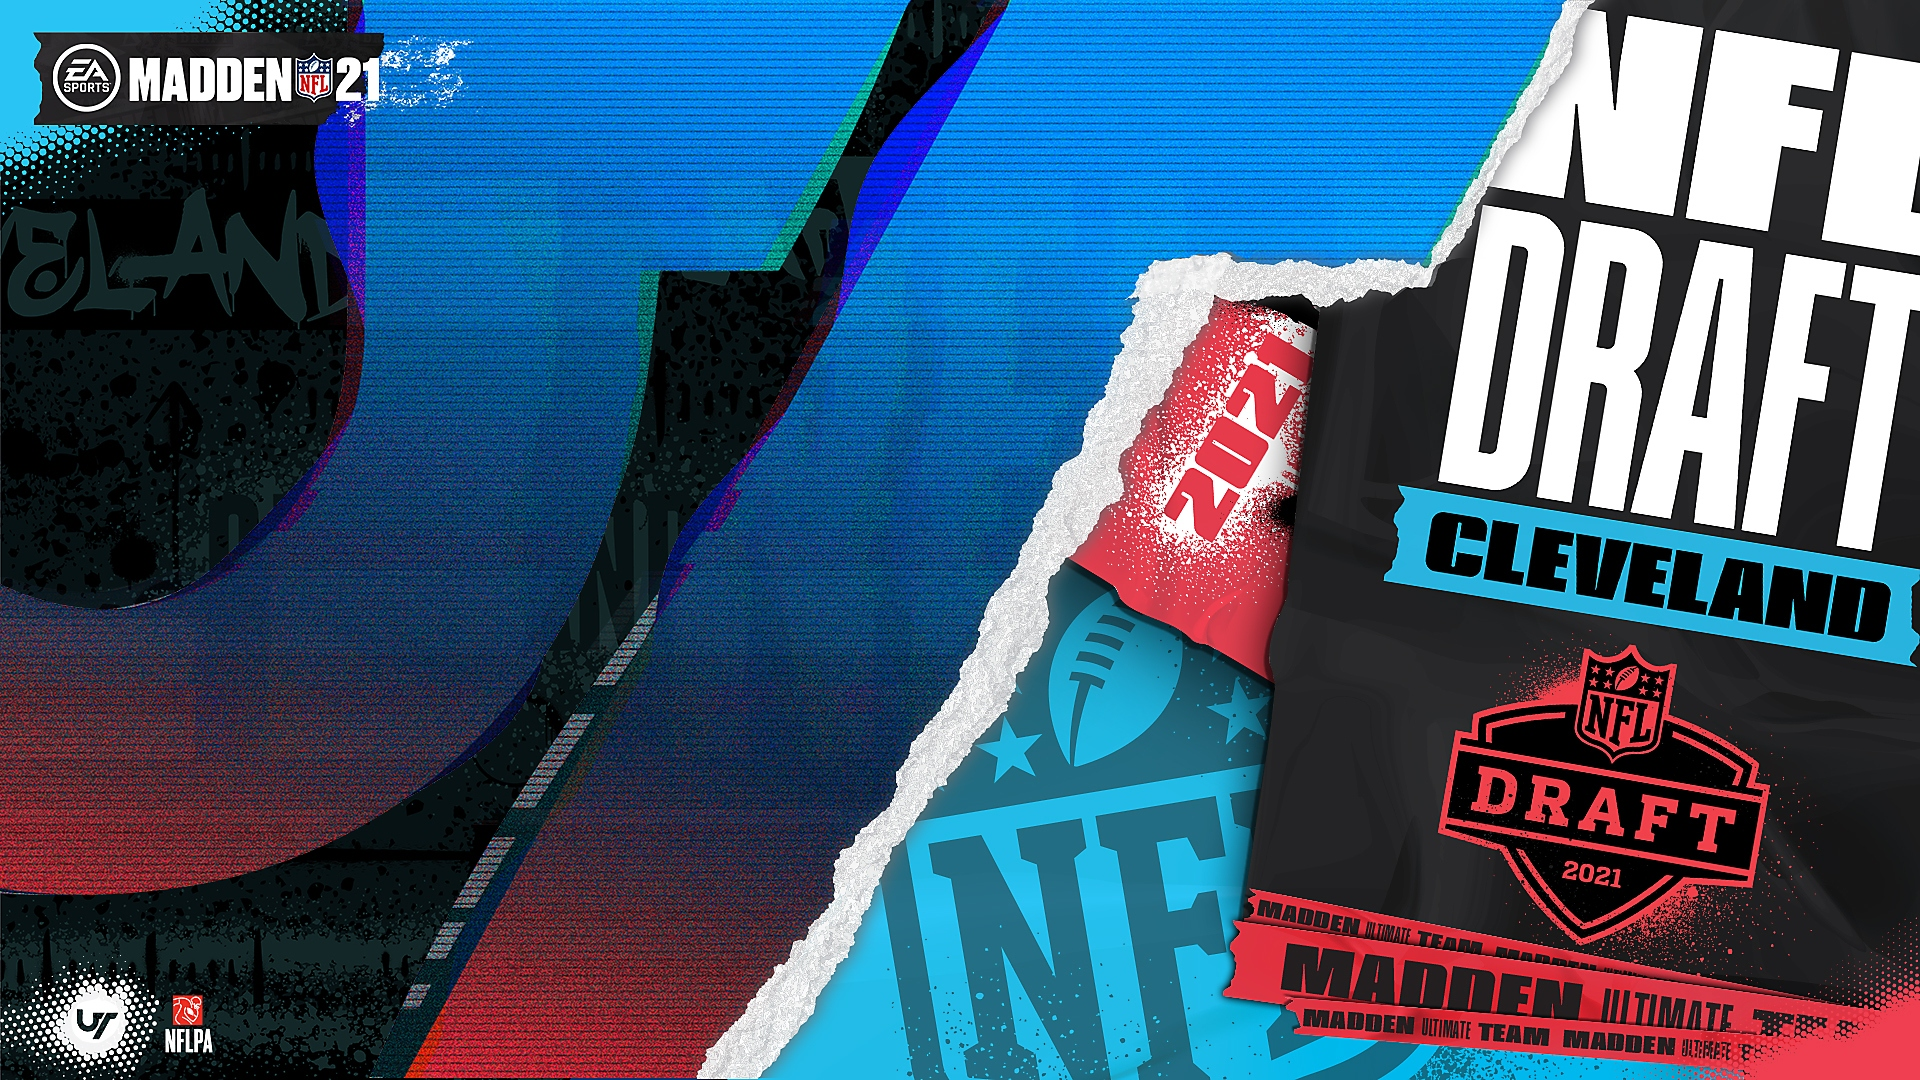 Madden Ultimate Team NFL Draft image